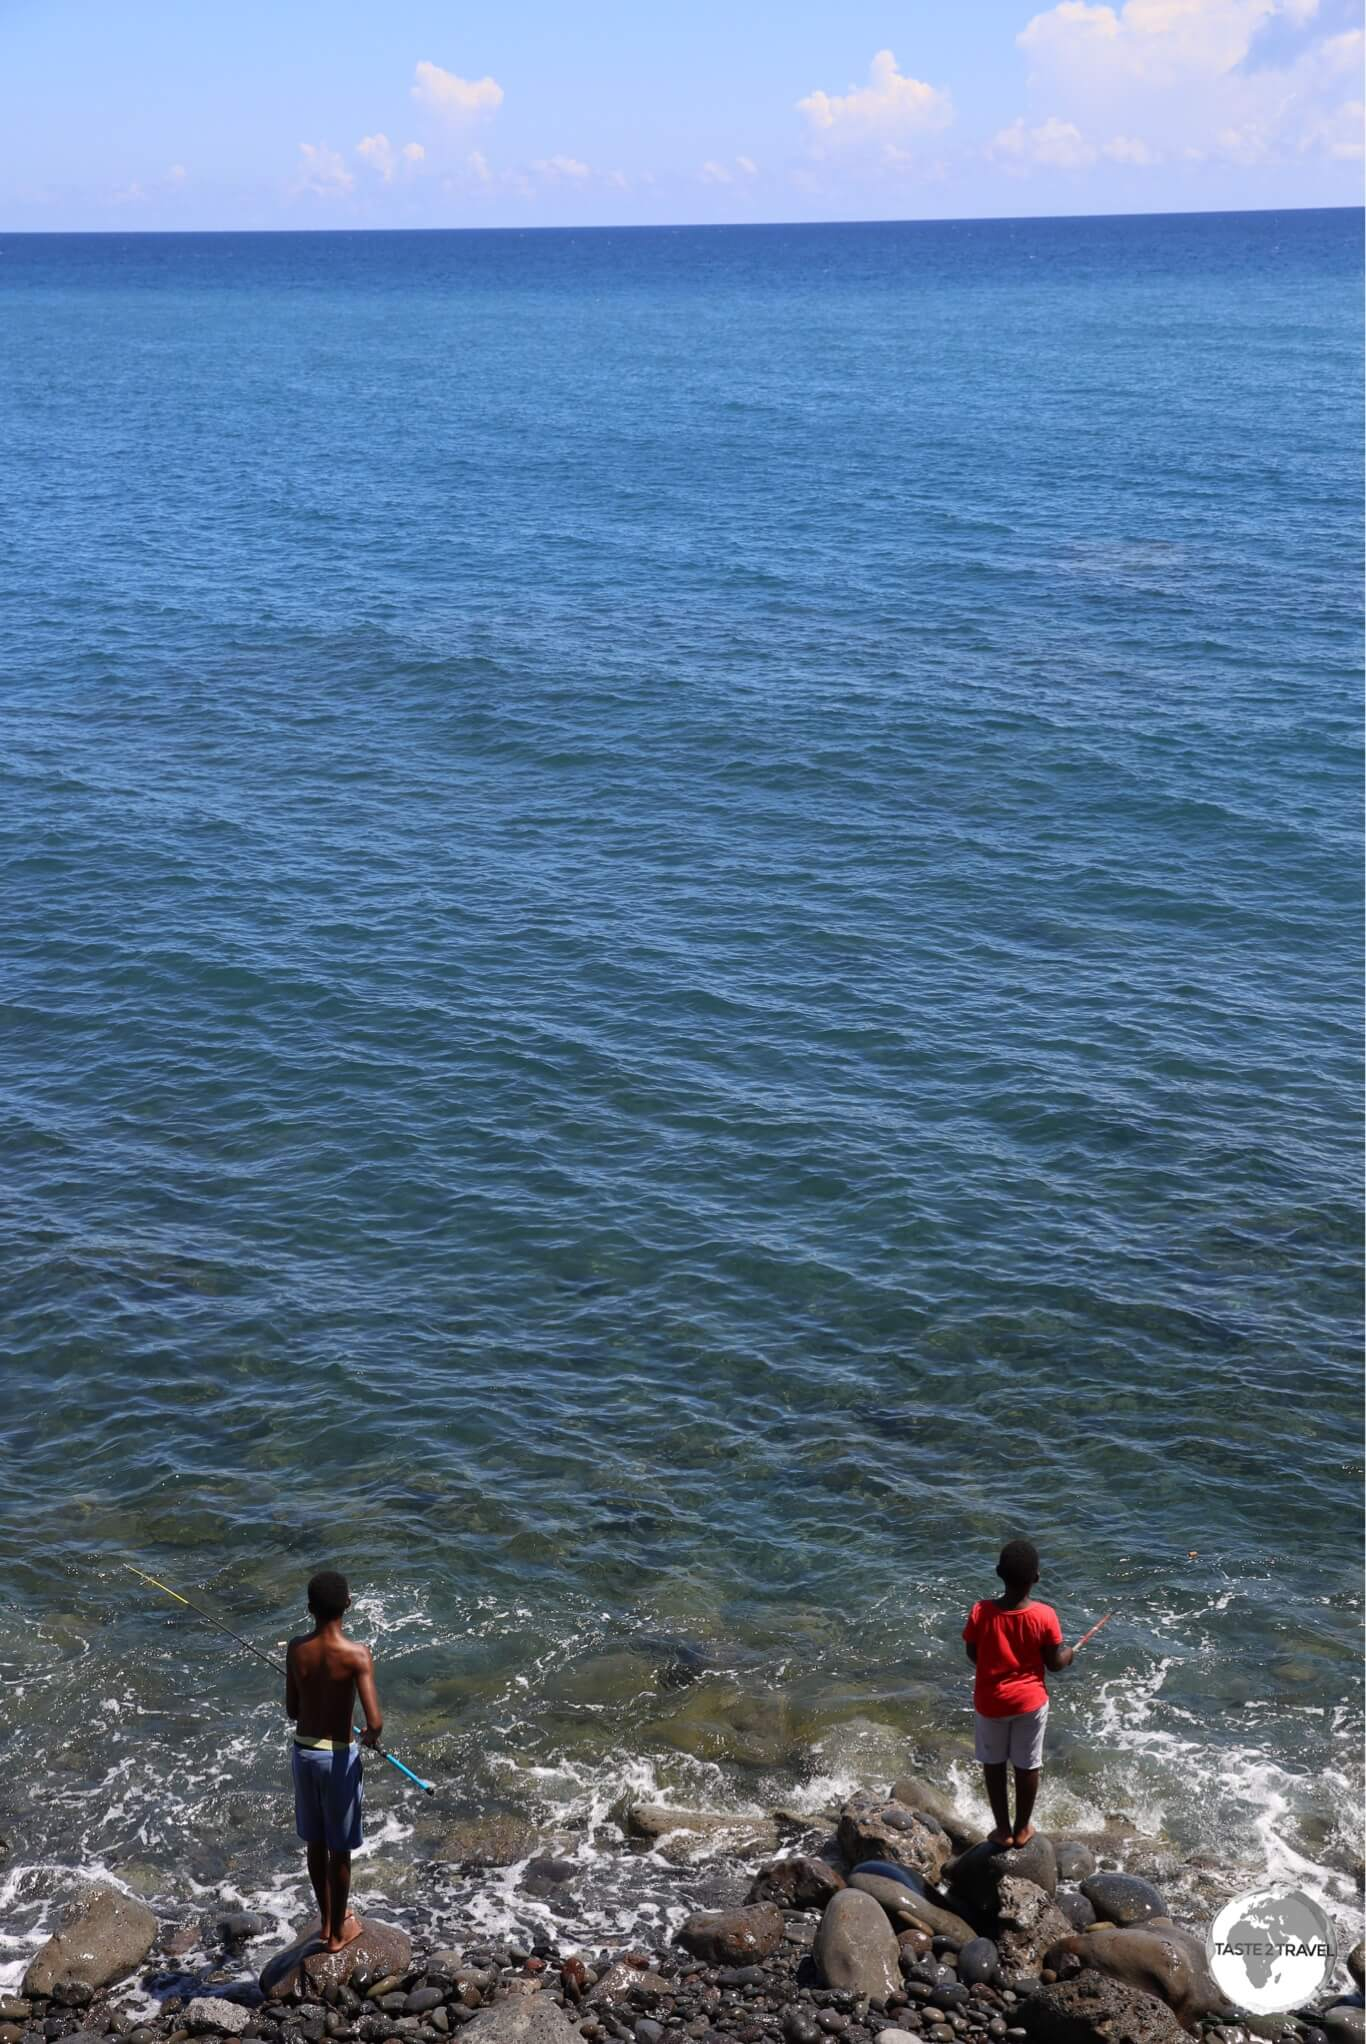 The clean waters of the Indian ocean provide an ideal fishing ground for two local boys, seen here at Le Barachois.